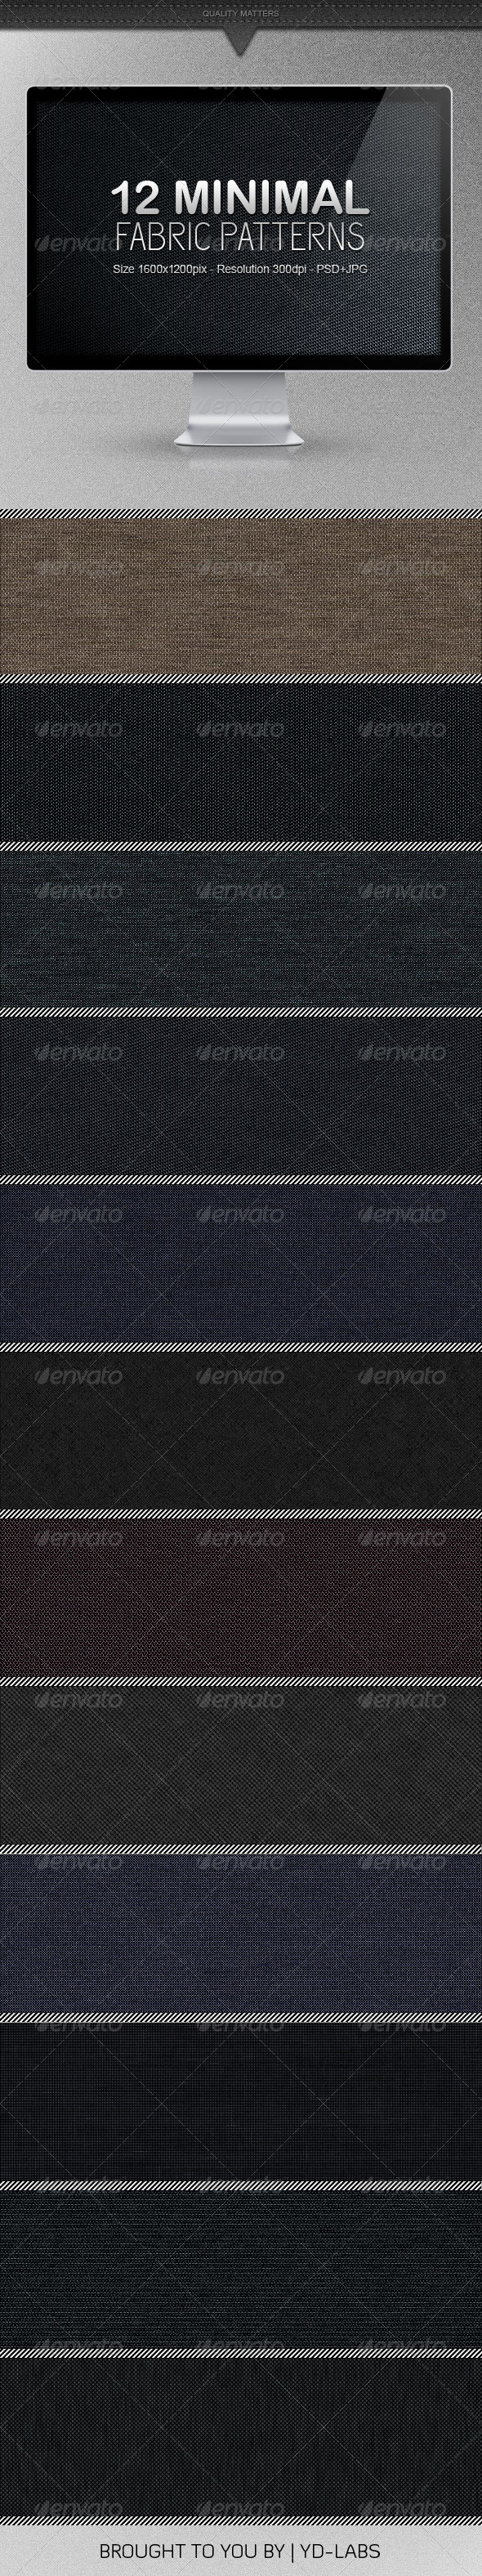 12 Minimal Fabric Patterns - Patterns Backgrounds